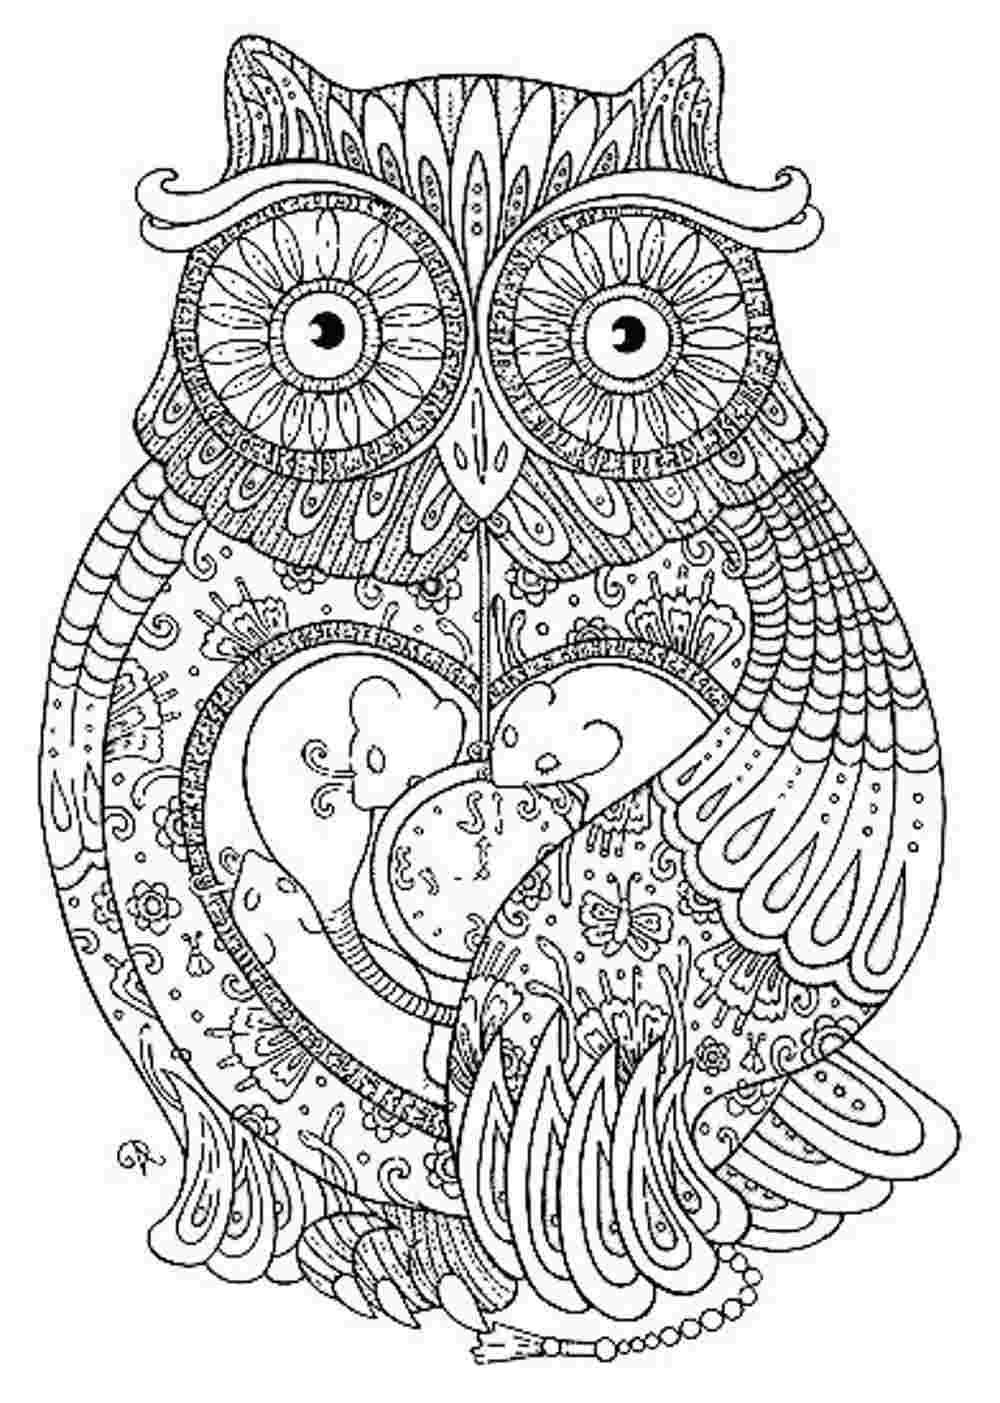 Owl Coloring Pages For Adults Printable Kids Colouring Pages Owl Coloring Pages Mandala Coloring Pages Abstract Coloring Pages